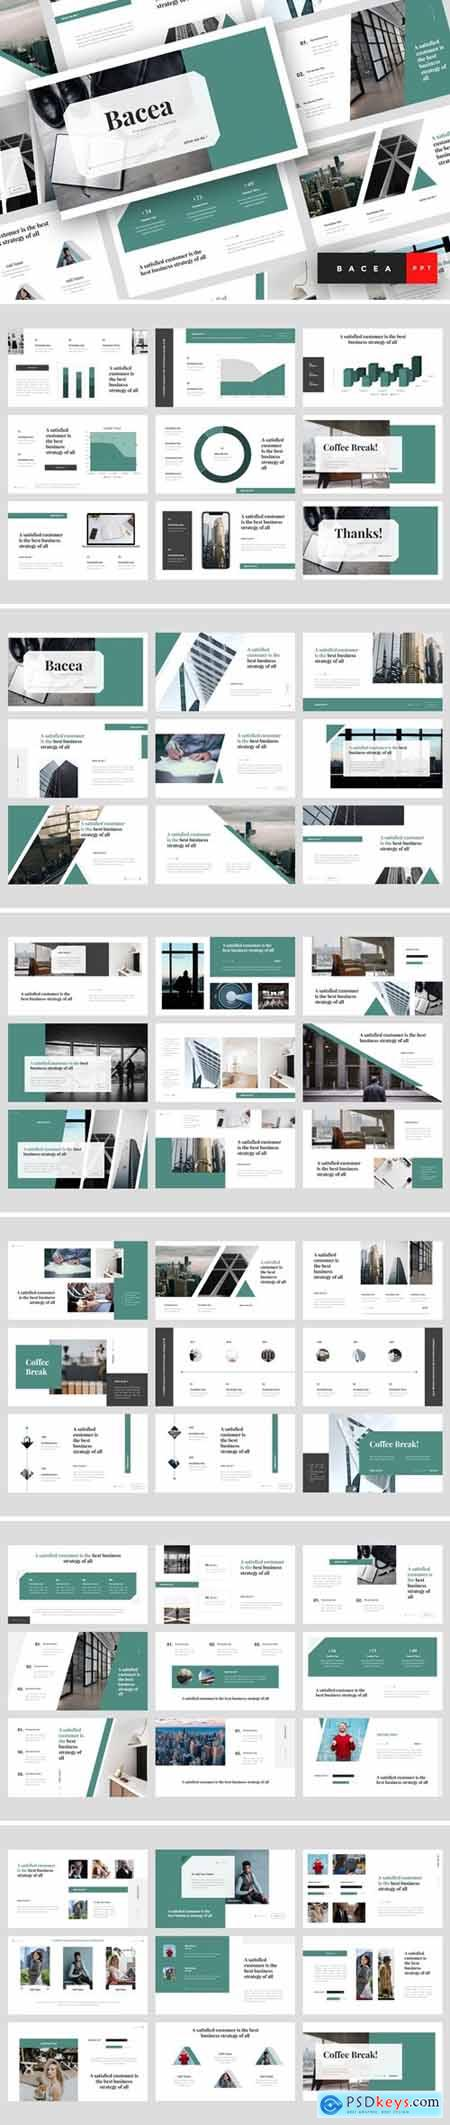 Bacea - Business Powerpoint, Keynote and Google Slides Templates